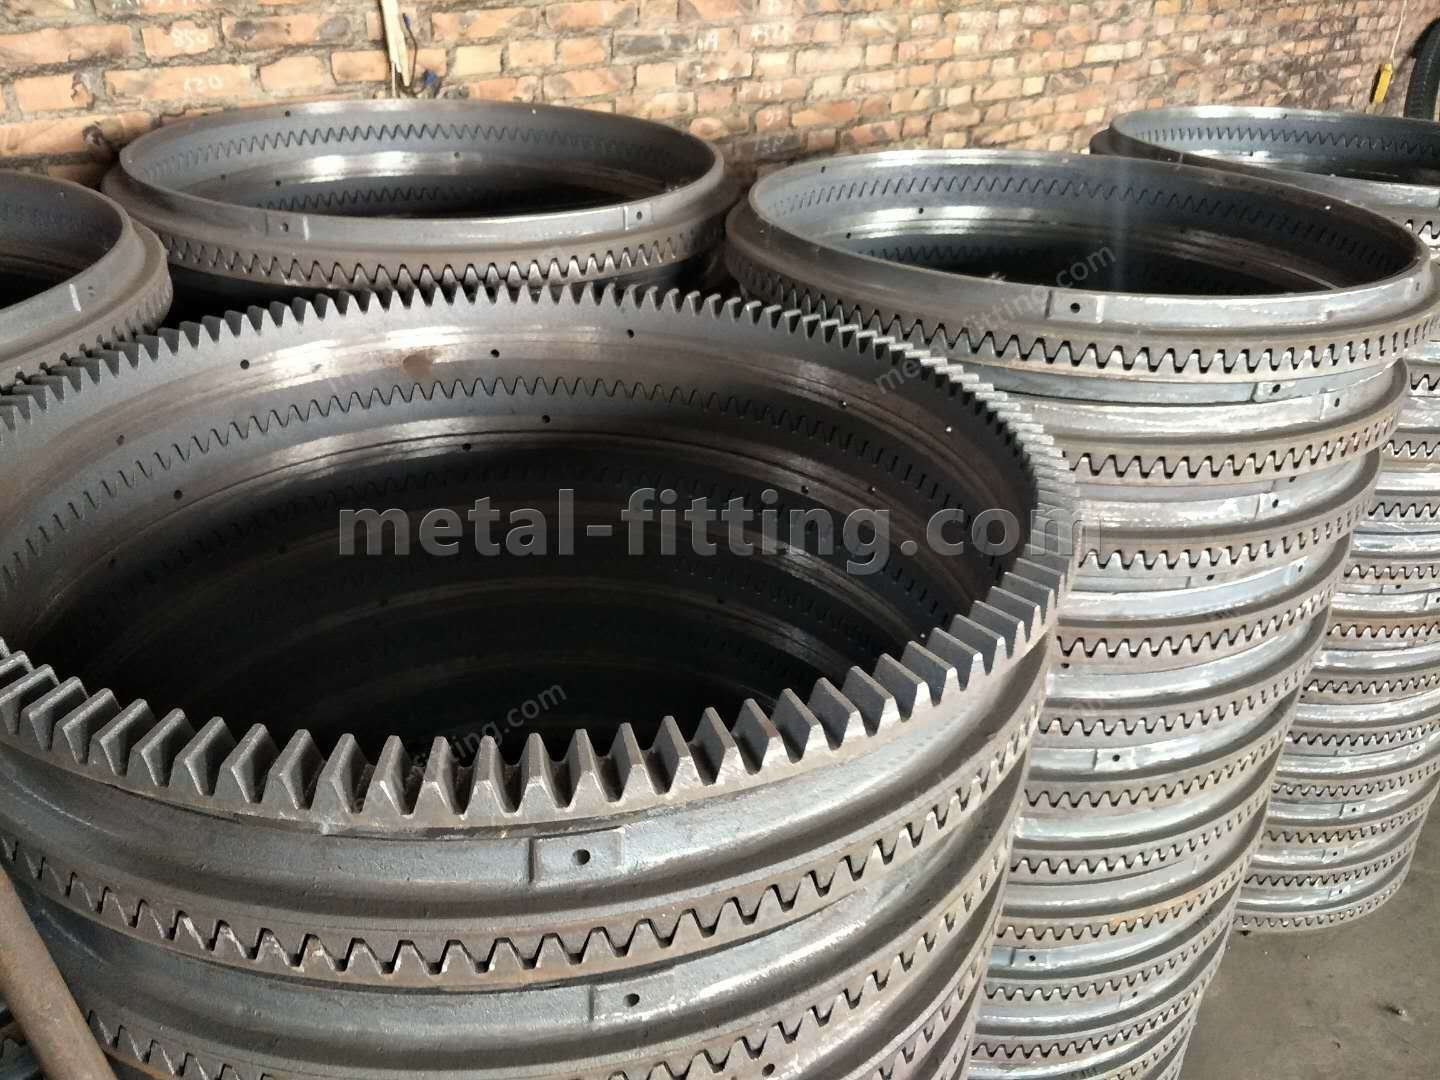 gear ring,cast iron pully,pully,steel spur gear-403833938752576483